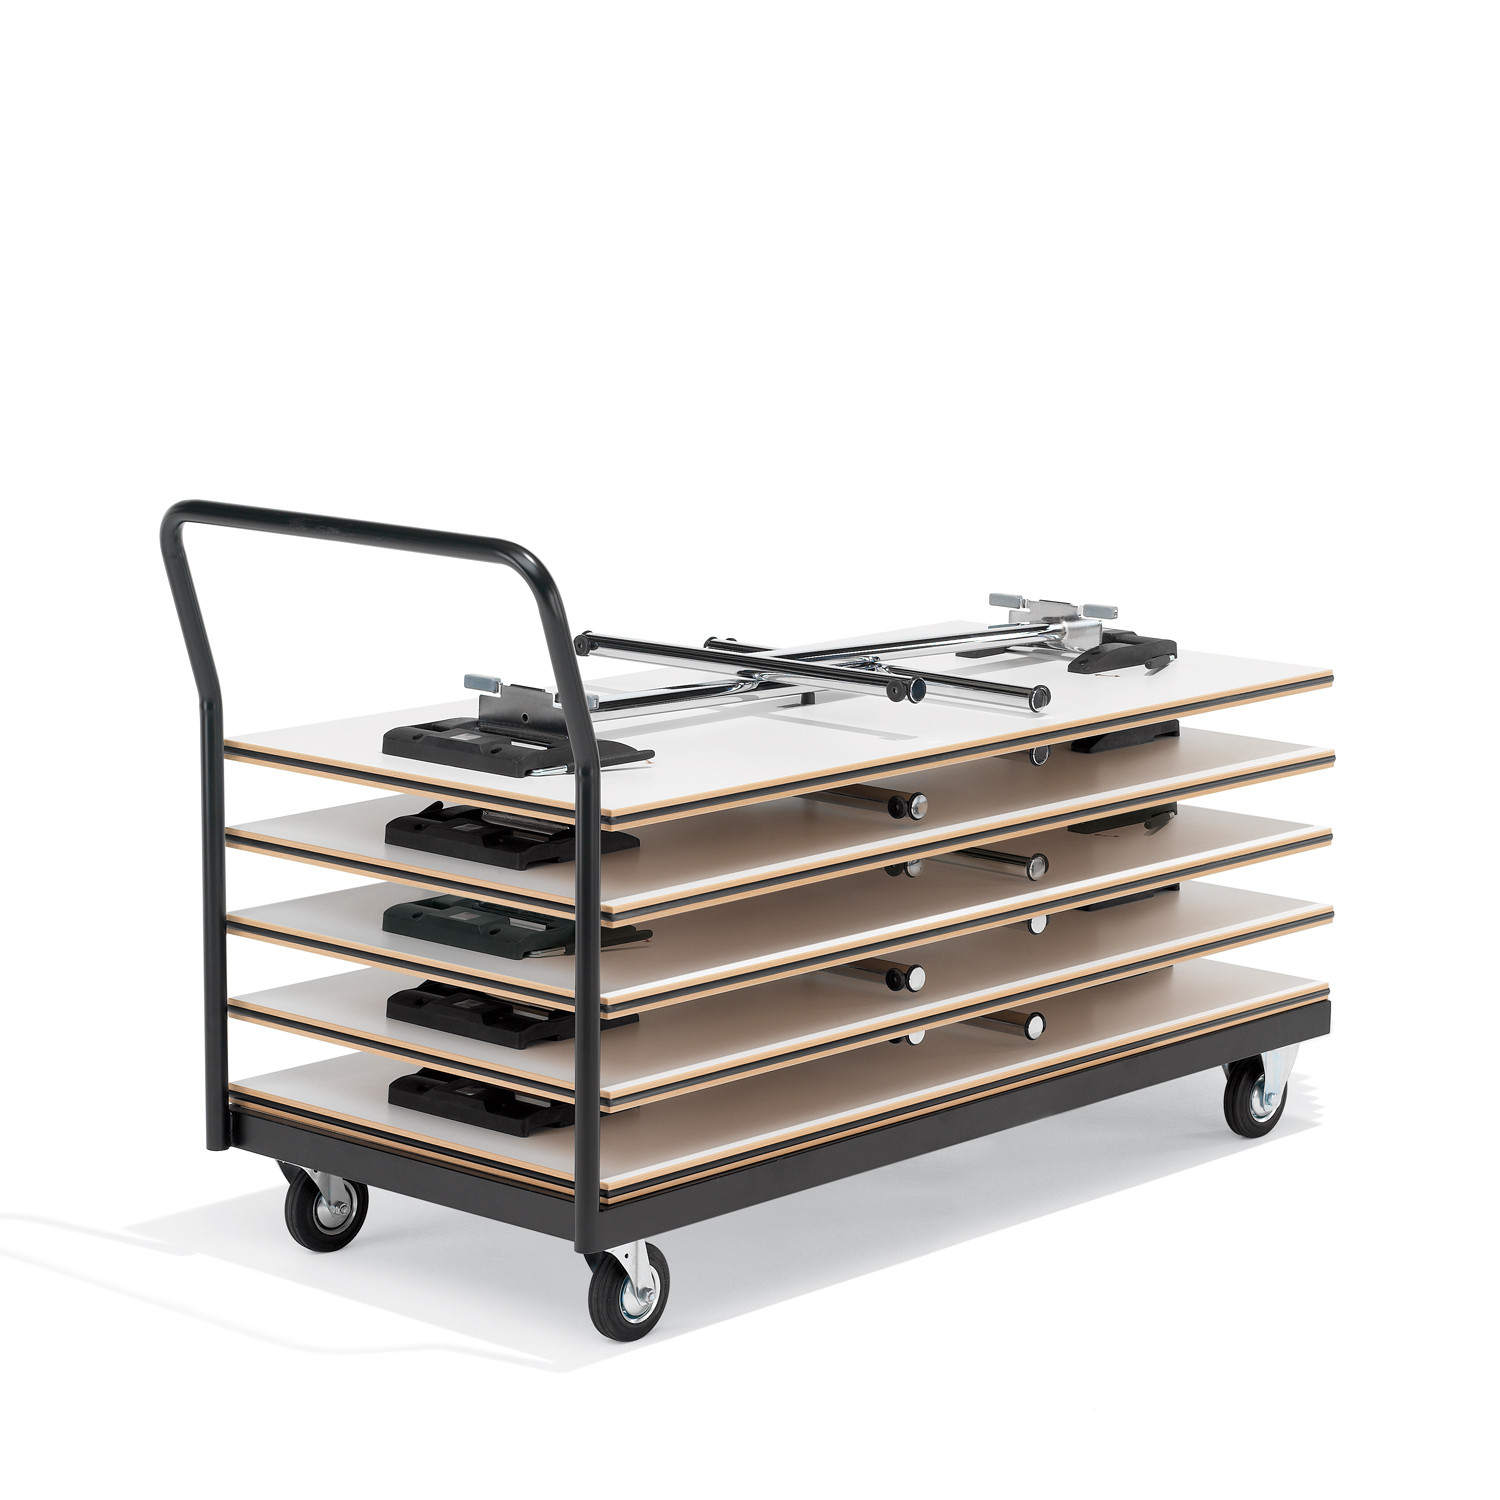 4000 Delgado Folding Tables with Trolley